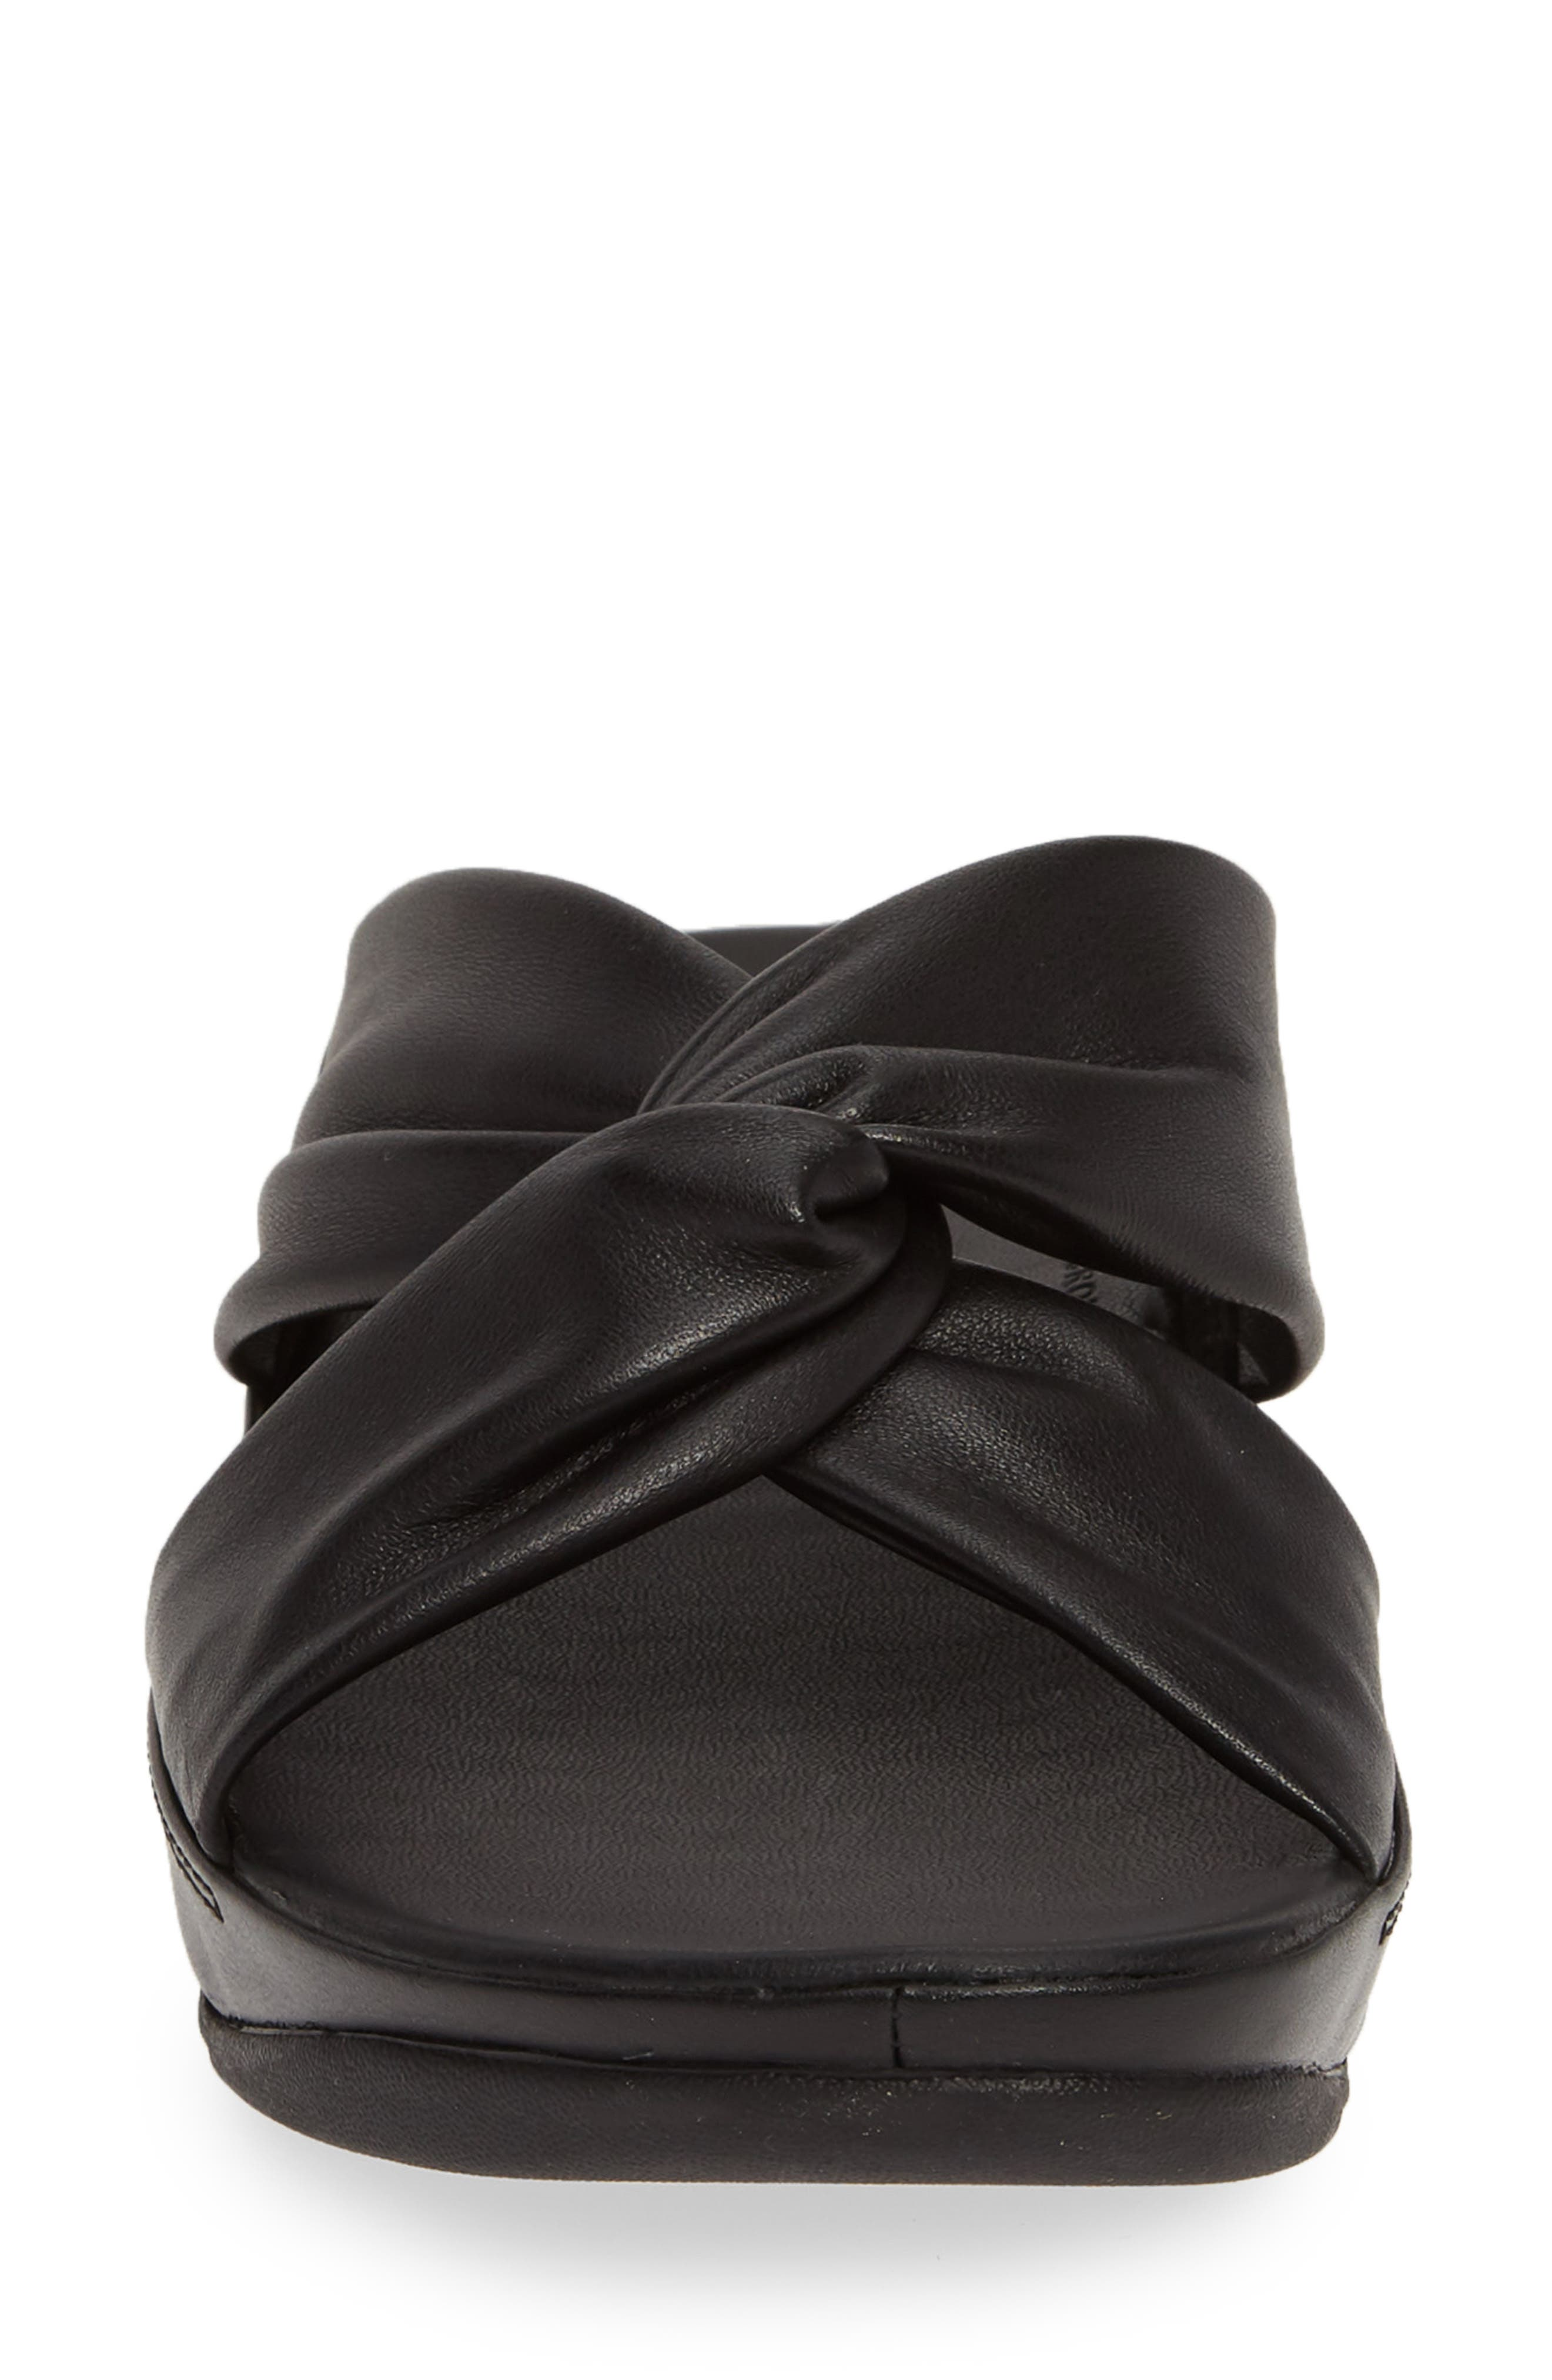 FITFLOP, Twiss Slide Sandal, Alternate thumbnail 4, color, BLACK LEATHER